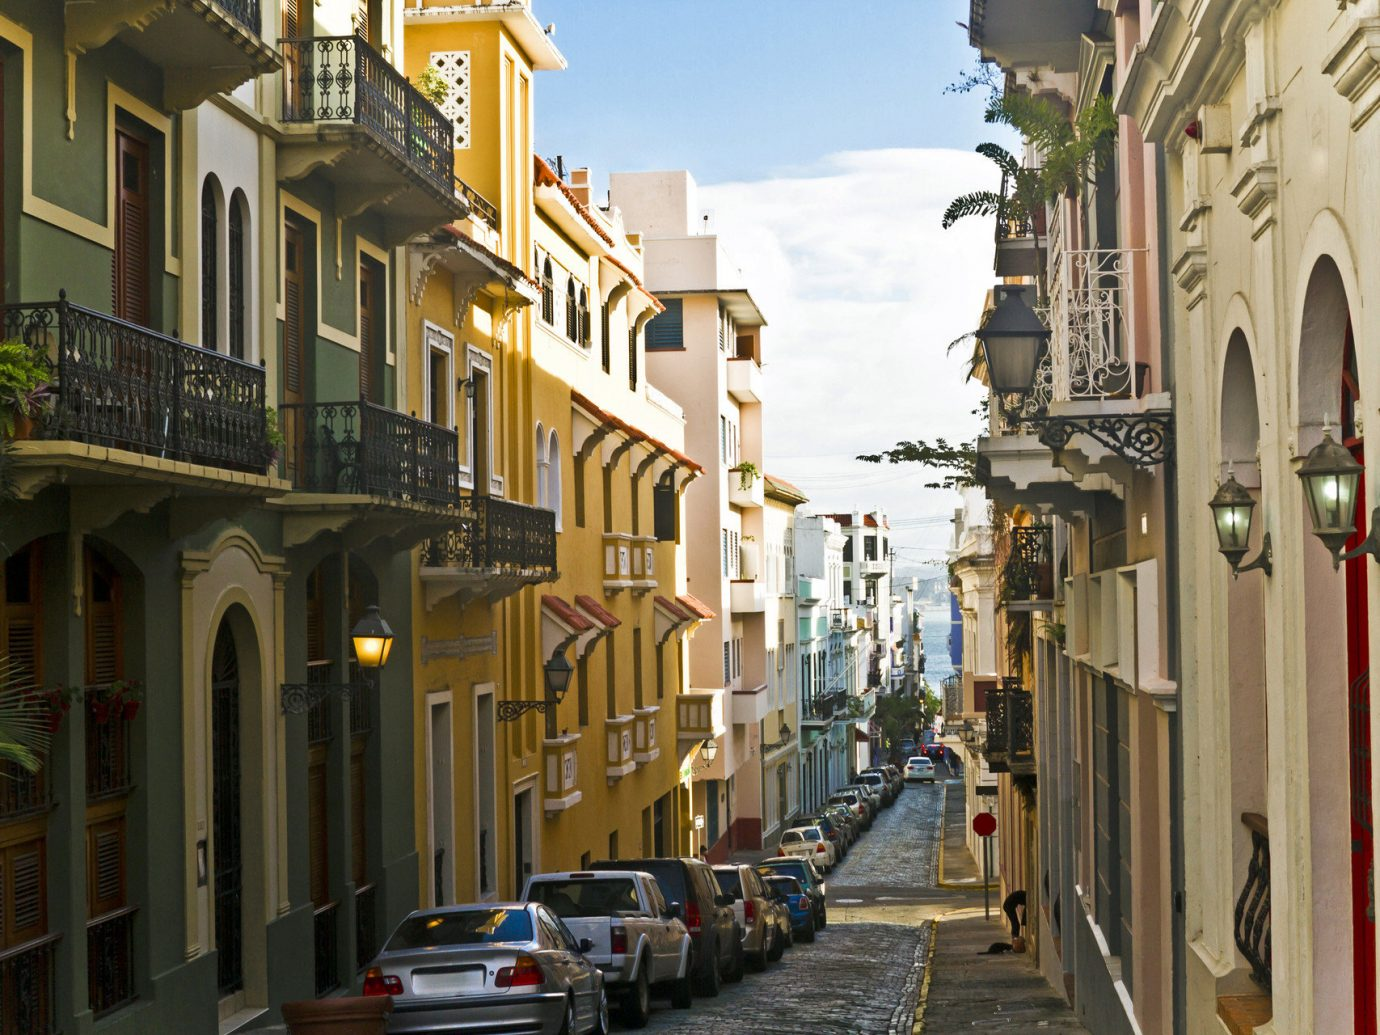 Narrow street in San Juan, Puerto Rico